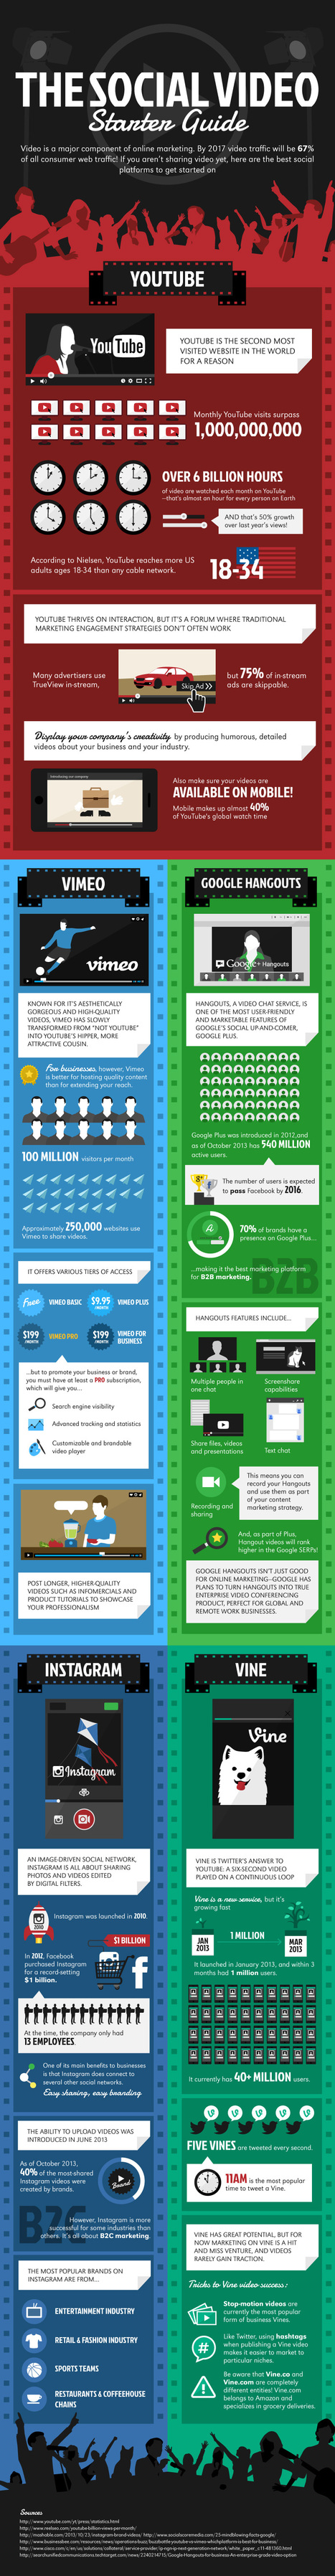 Infographic: The Social Video Starter Guide - Business 2 Community | BPEV: Best Practices in Educational Video | Scoop.it